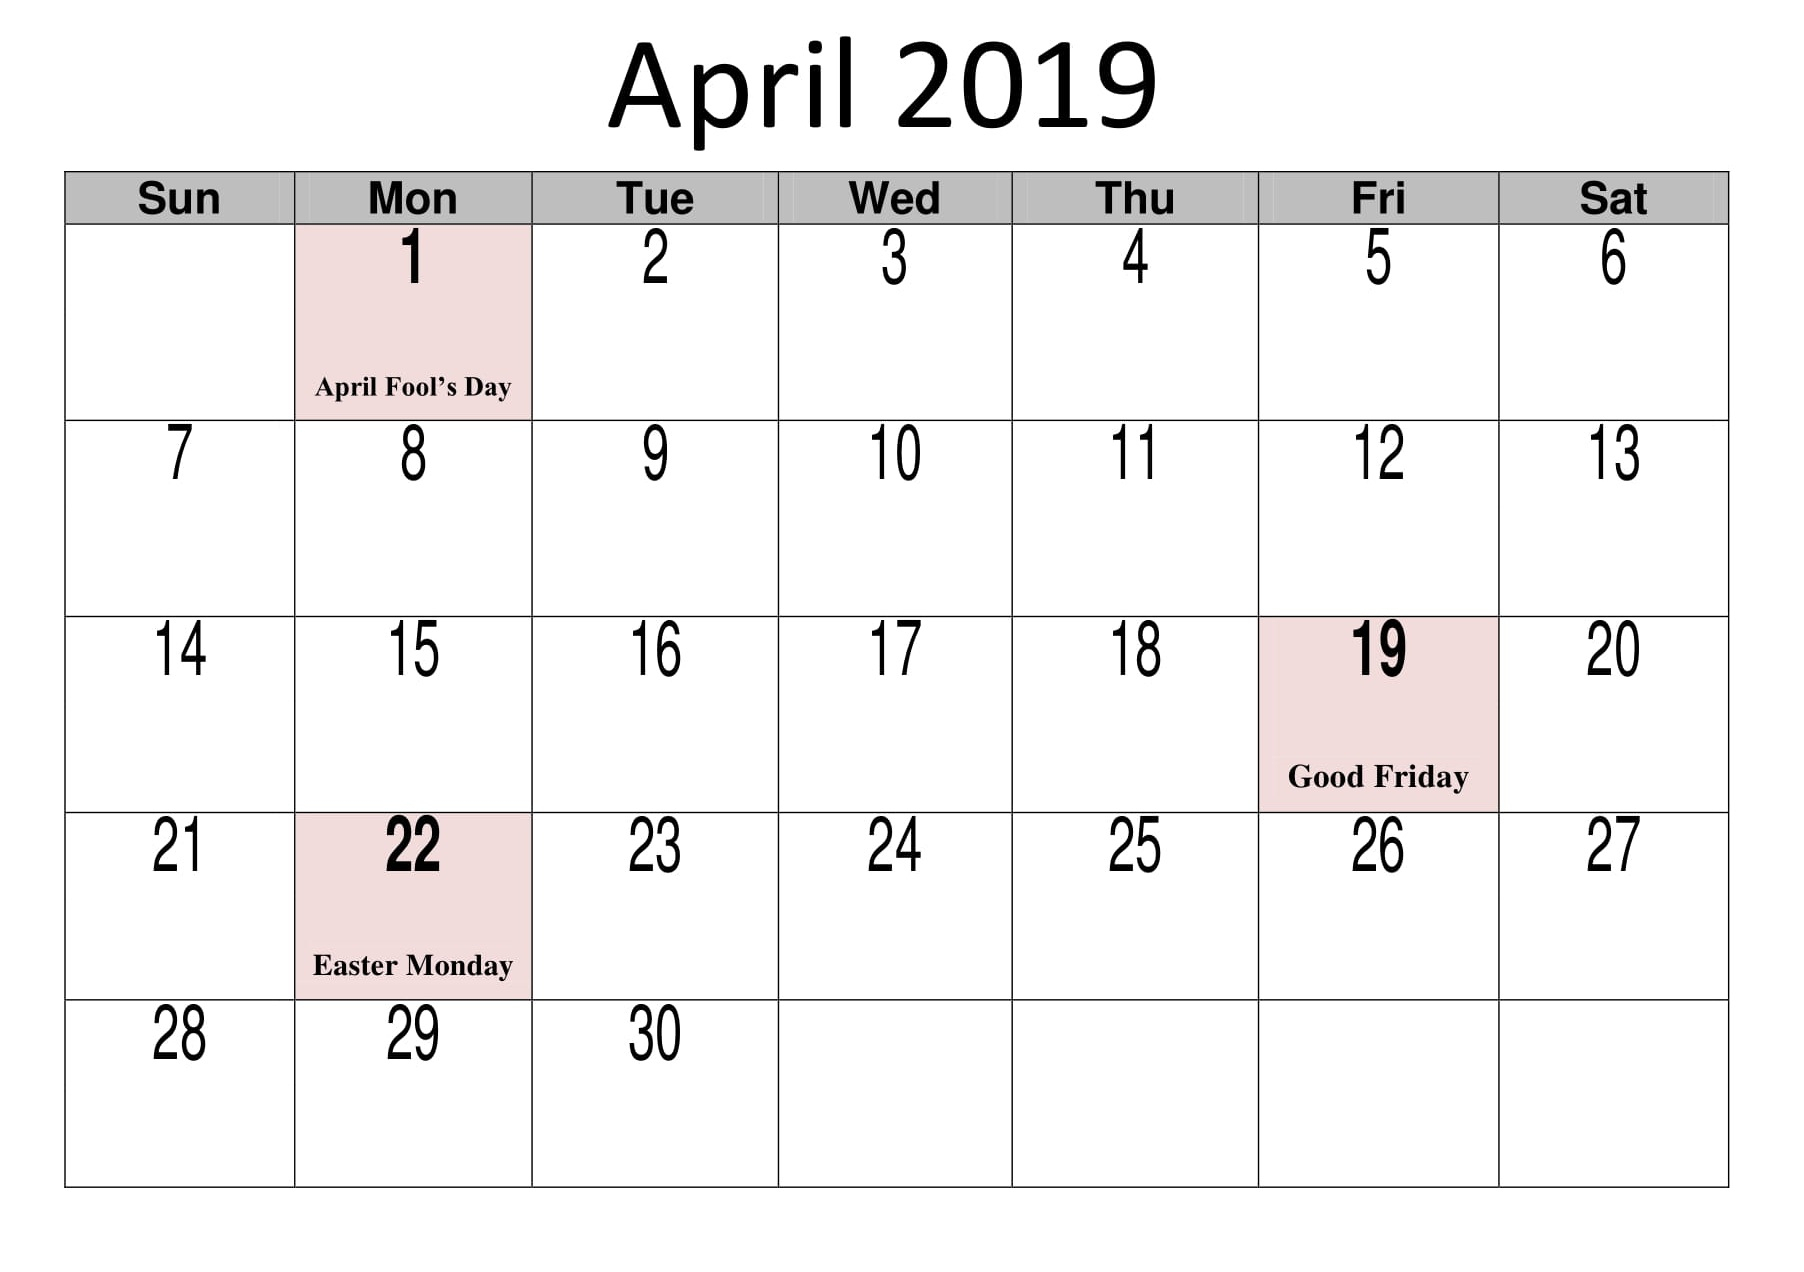 April 2019 Calendar With Holidays Template - Free Printable Calendar pertaining to Calendar With Holidays Printable Templates